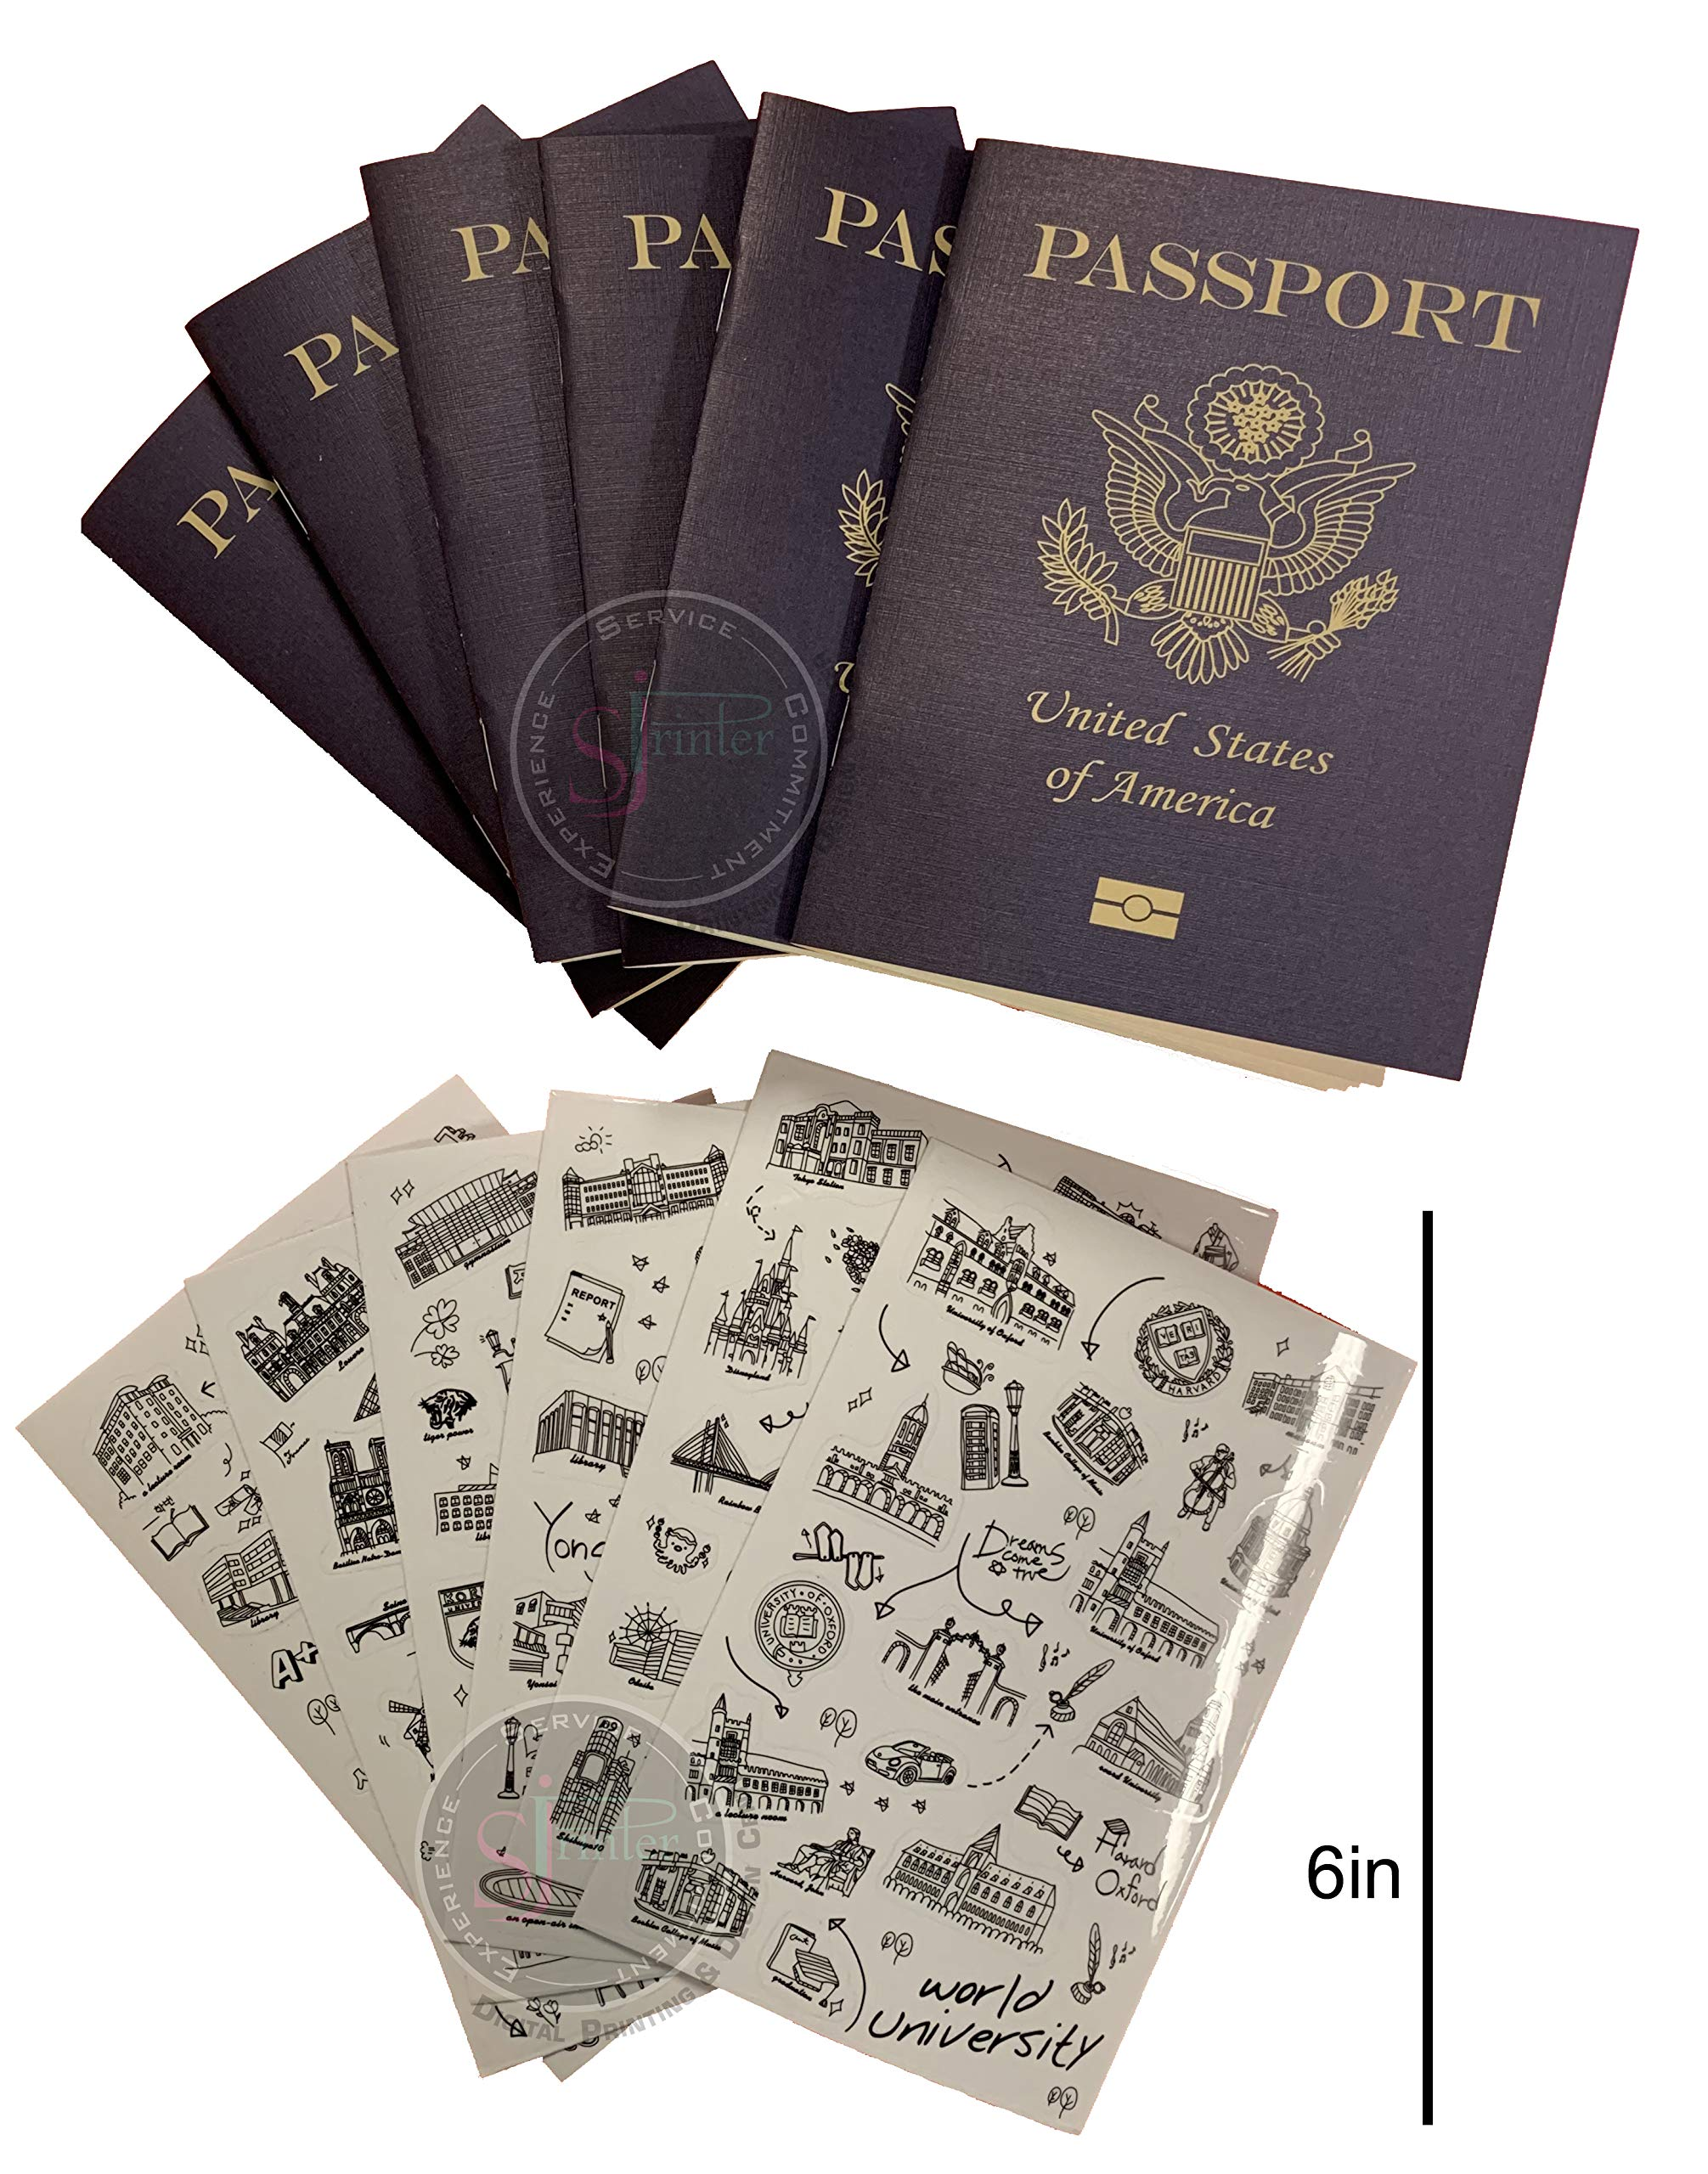 Passport |Little passports for kids |Travel scrapbook | Set with travel stickers world famous sights |Pretend play, party favors, airplane toy, journal notebooks, geography, classroom social study